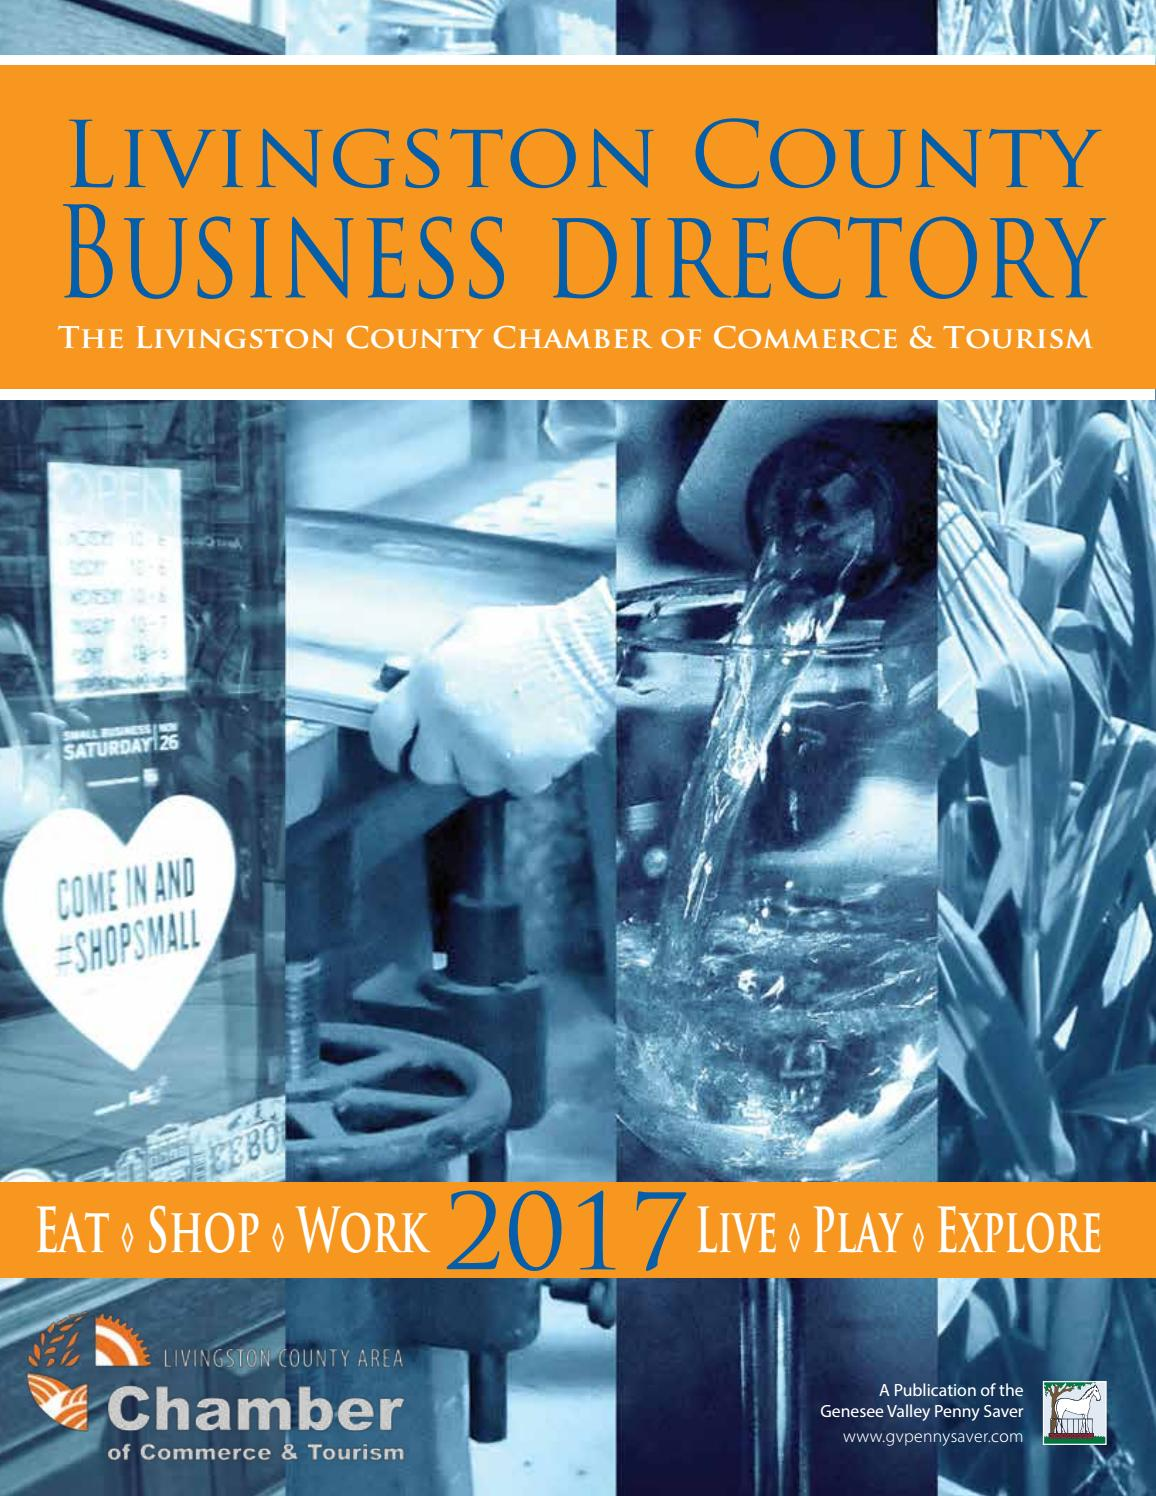 New york livingston county leicester - Livingston County Business Directory By Genesee Valley Publications Issuu